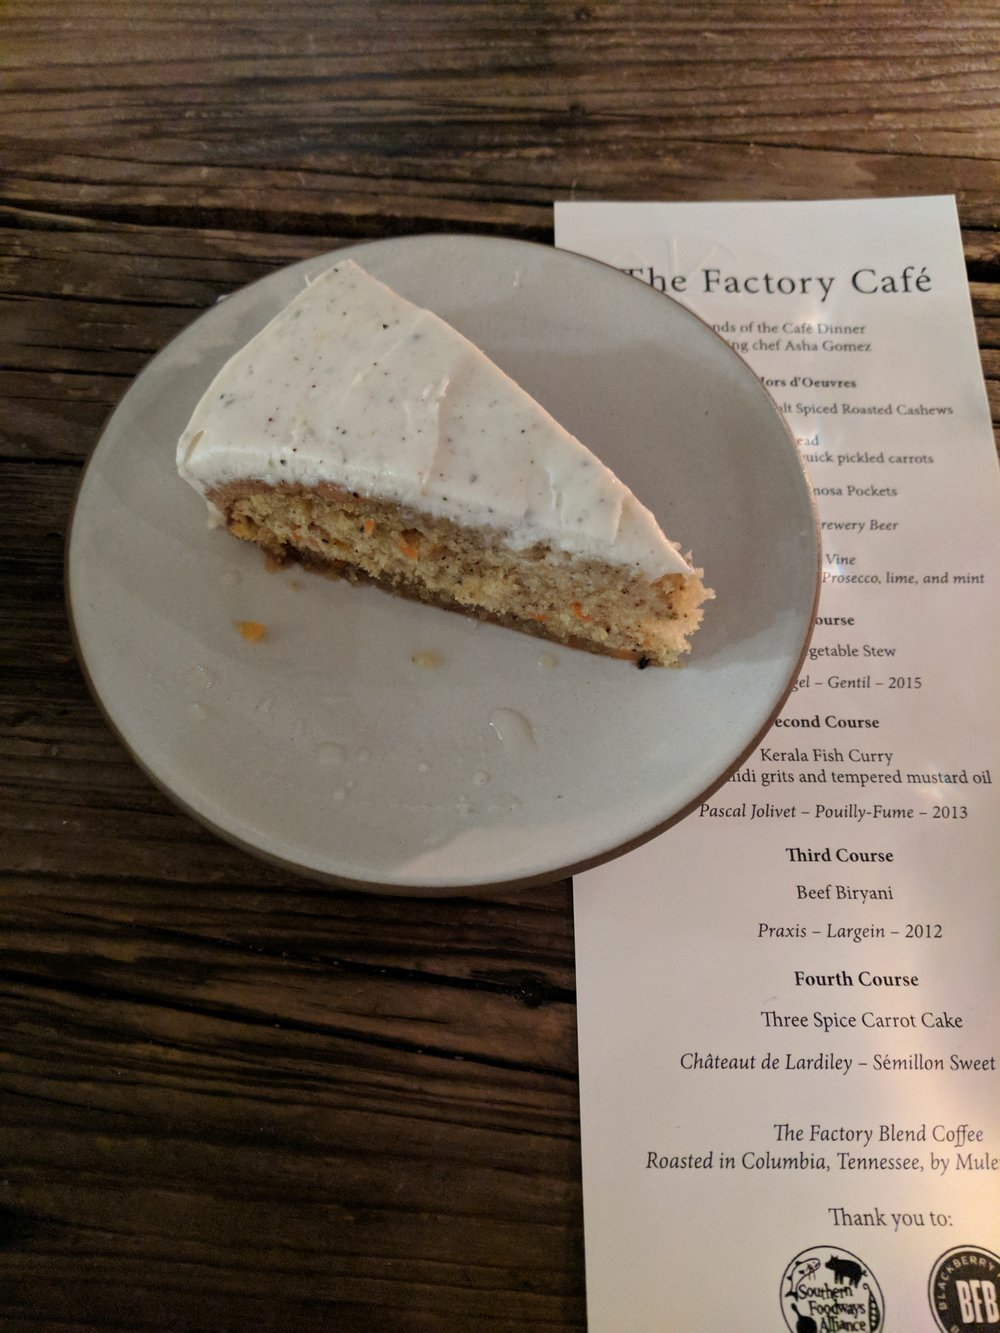 Three Spice Carrot Cake